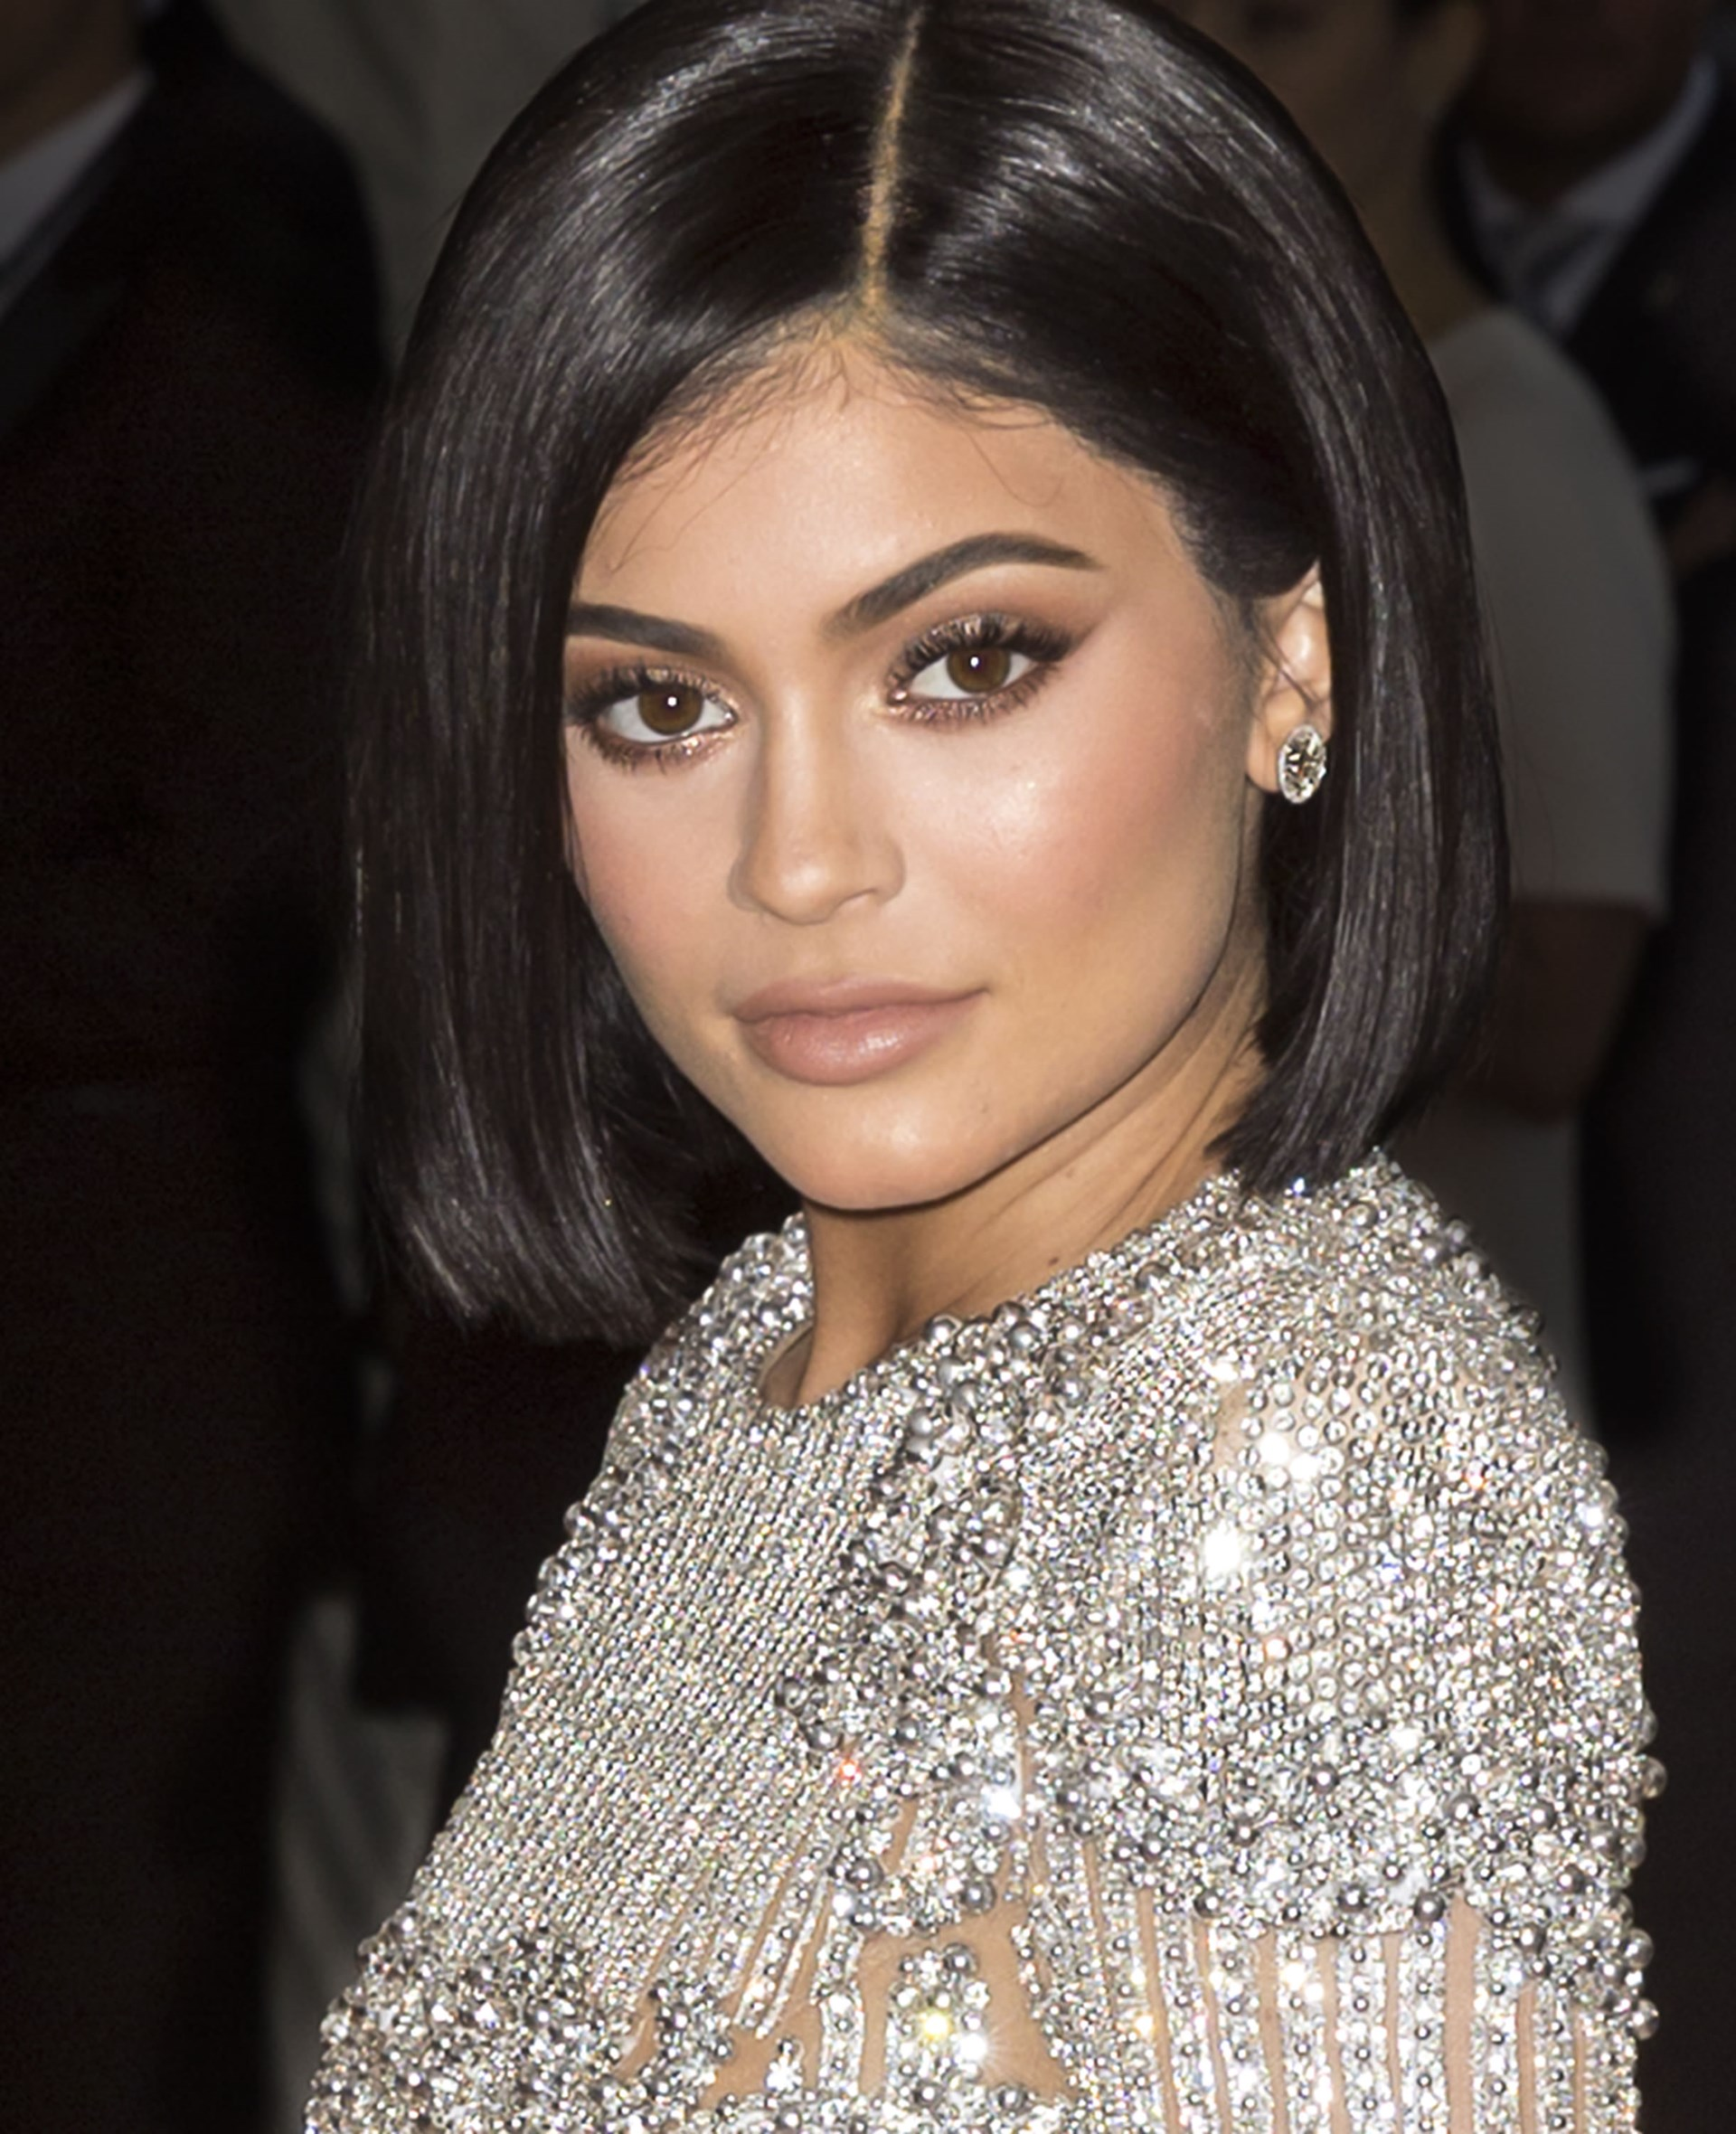 Kylie Jenner Is On Track to Become a Billionaire ...